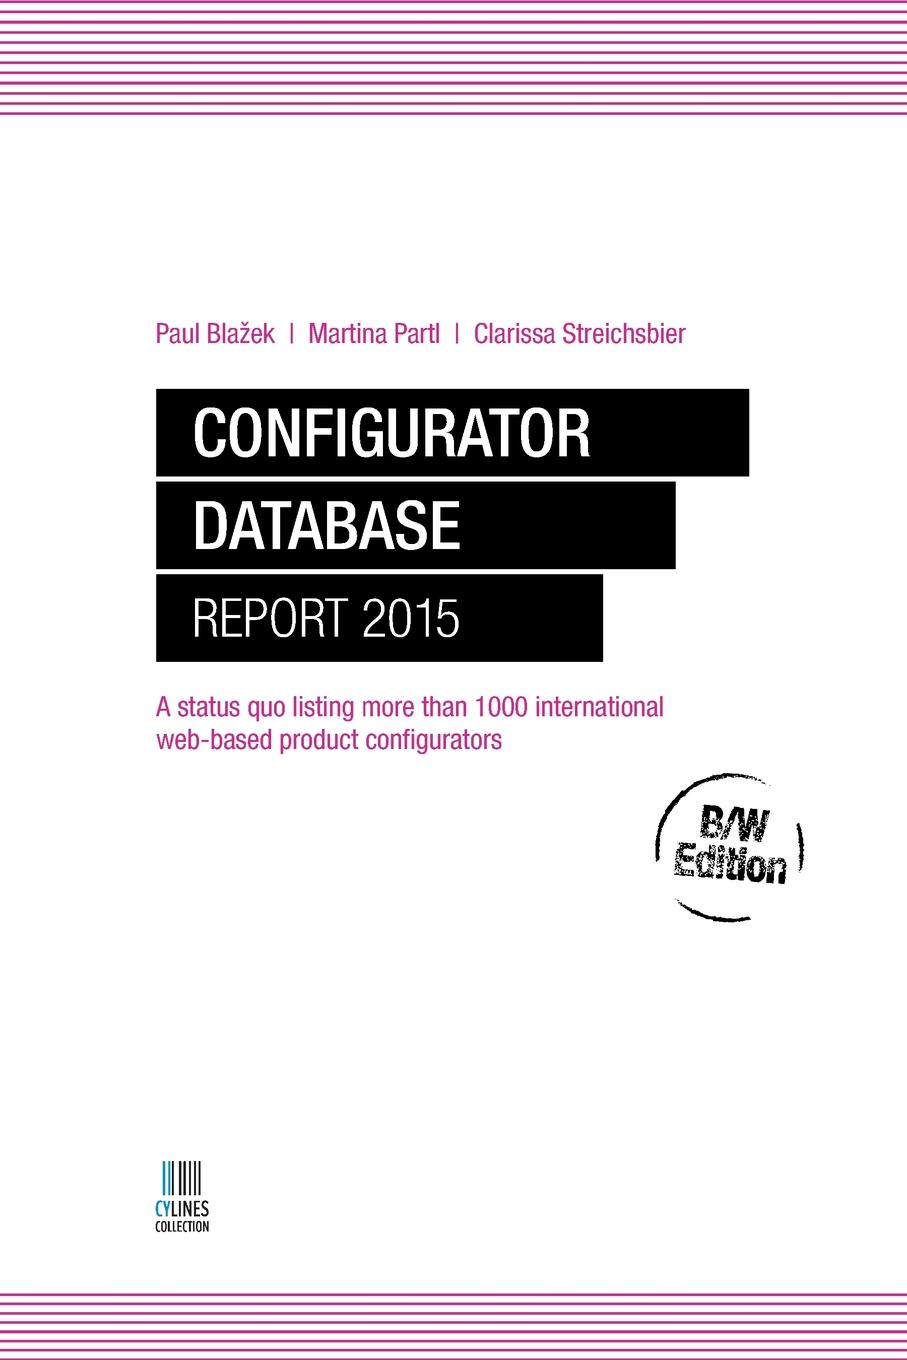 Configurator Database Report 2015 B/W Edition The Configurator Database Report 2015 is a listing of the 1050...